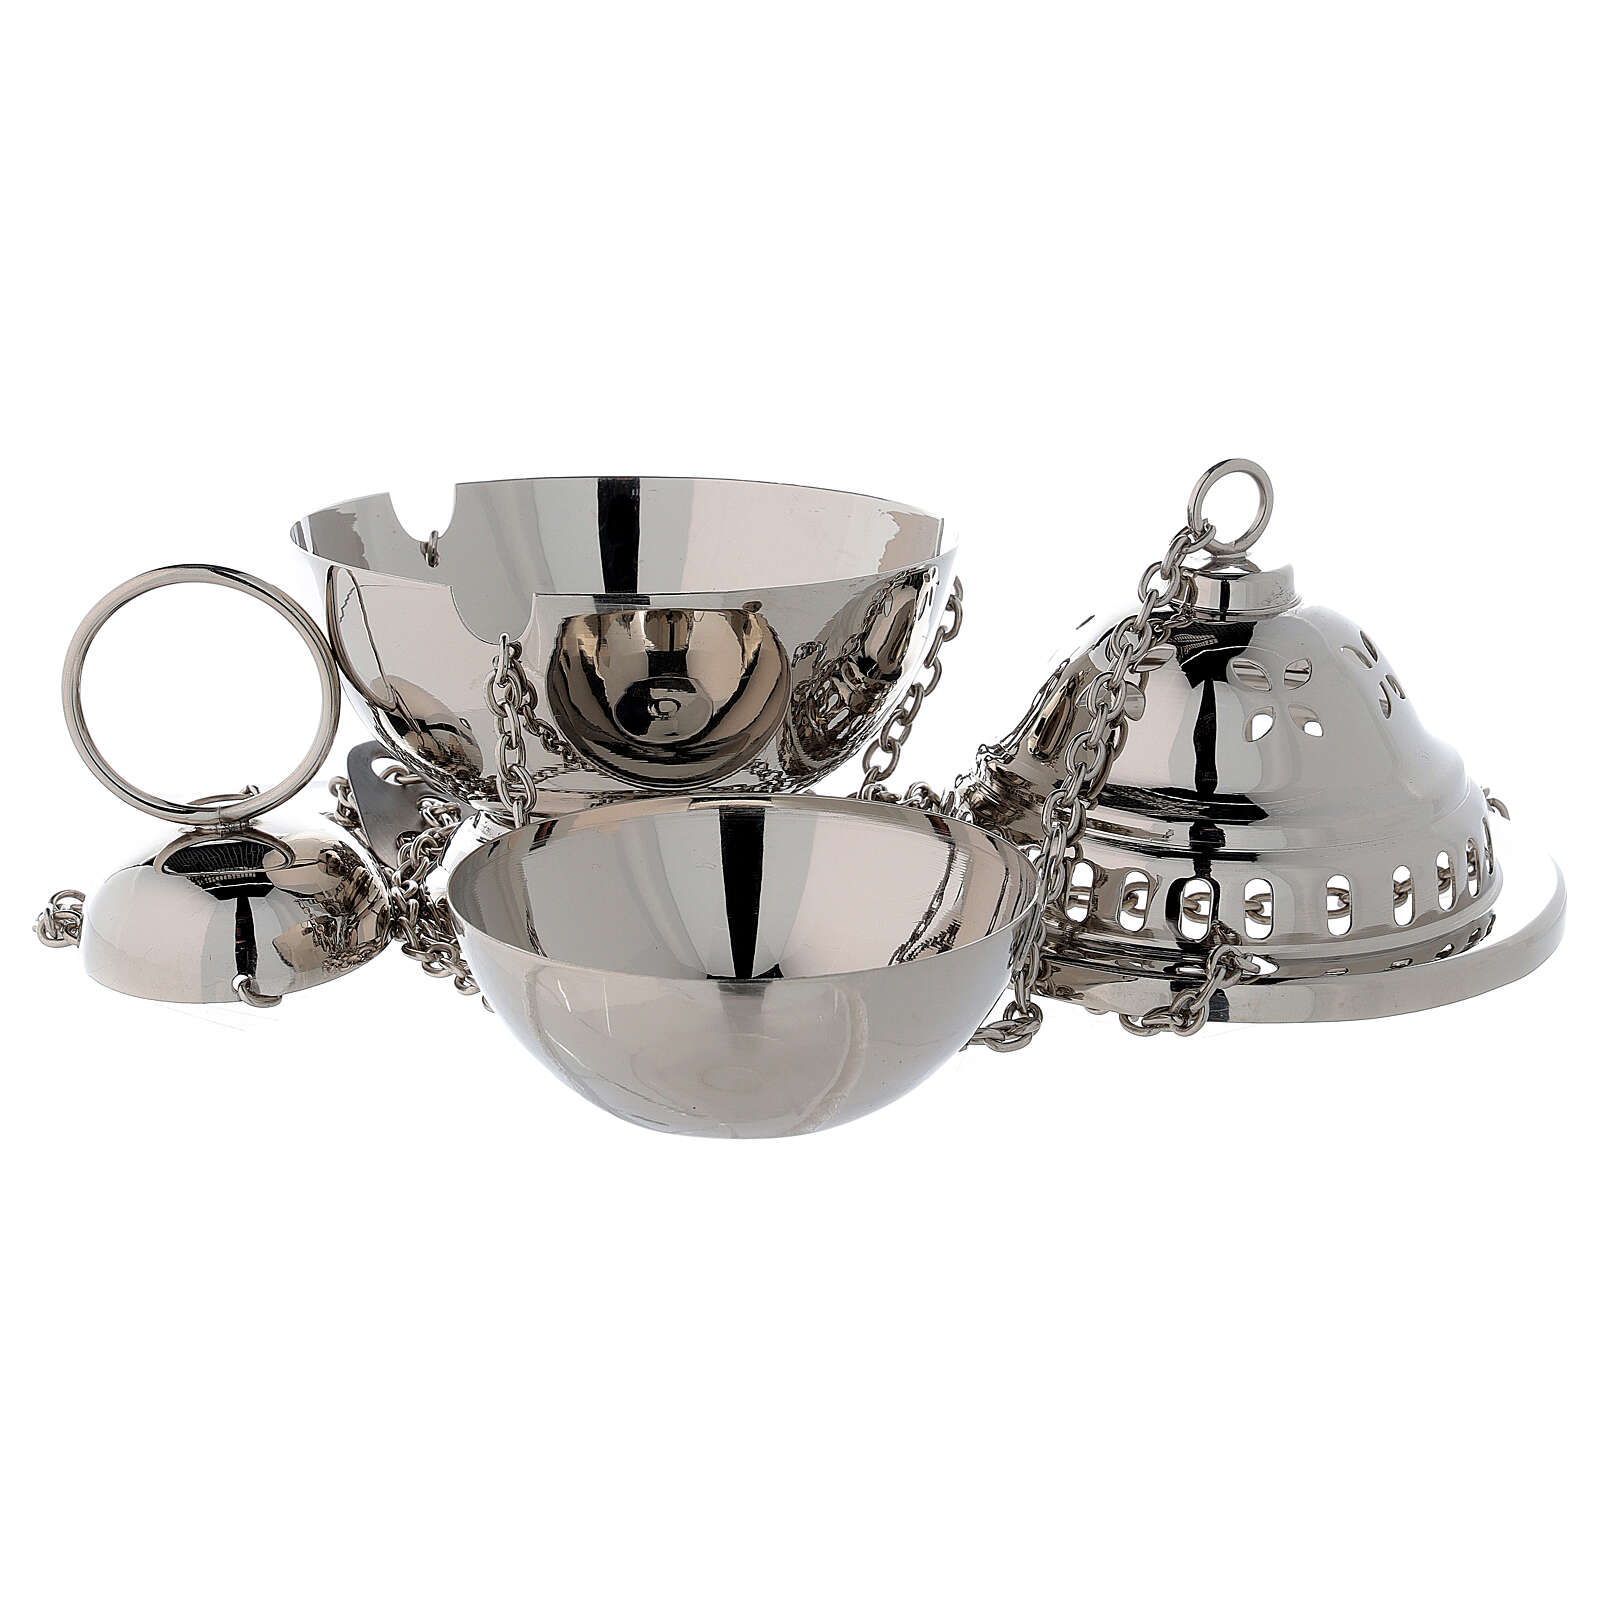 Spherical thurible with petal shaped holes nickel-plated brass h 5 1/2 in 3